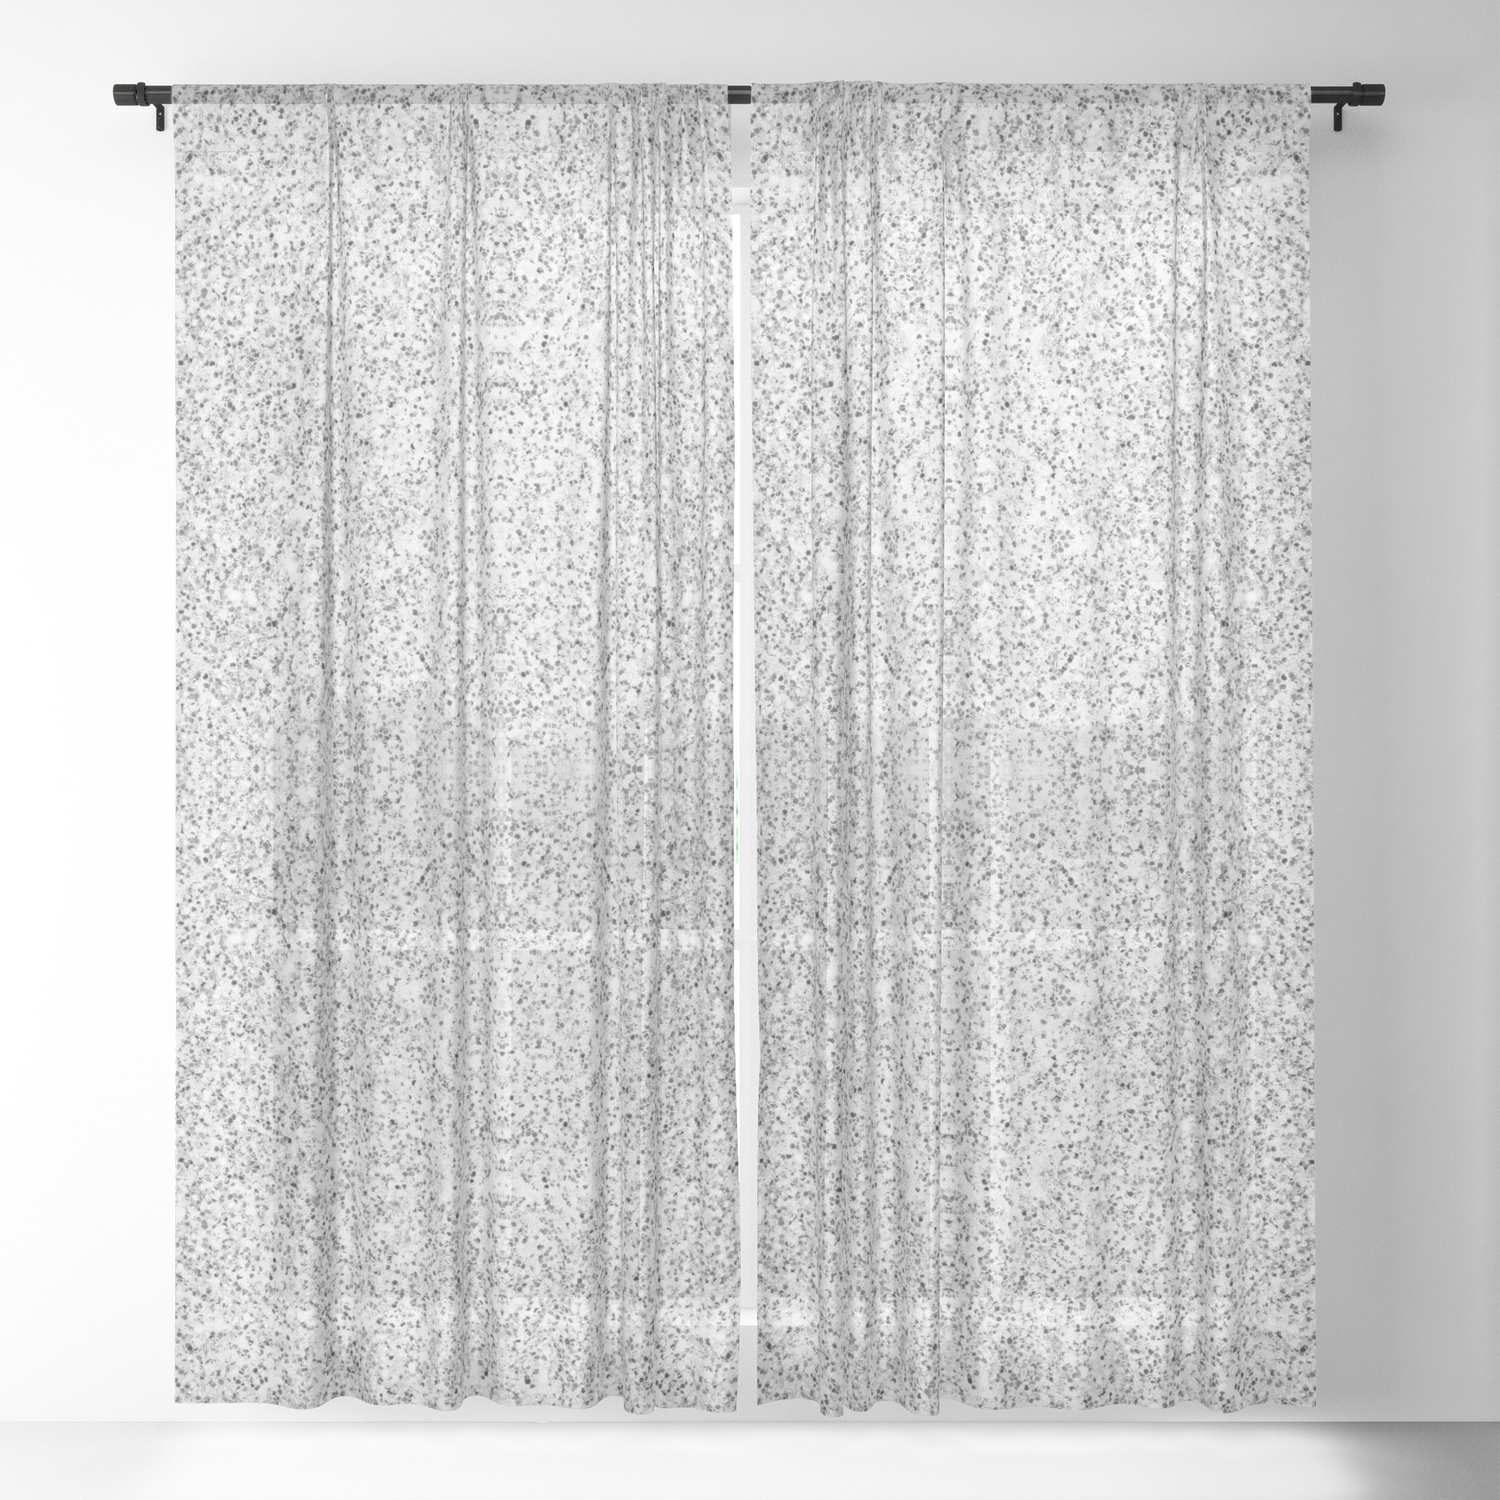 Beautiful Silver Glitter Sparkles Sheer Curtain By Pldesign Society6 Here you can explore hq silver glitter transparent illustrations, icons and clipart with filter setting polish your personal project or design with these silver glitter transparent png images, make it. beautiful silver glitter sparkles sheer curtain by pldesign